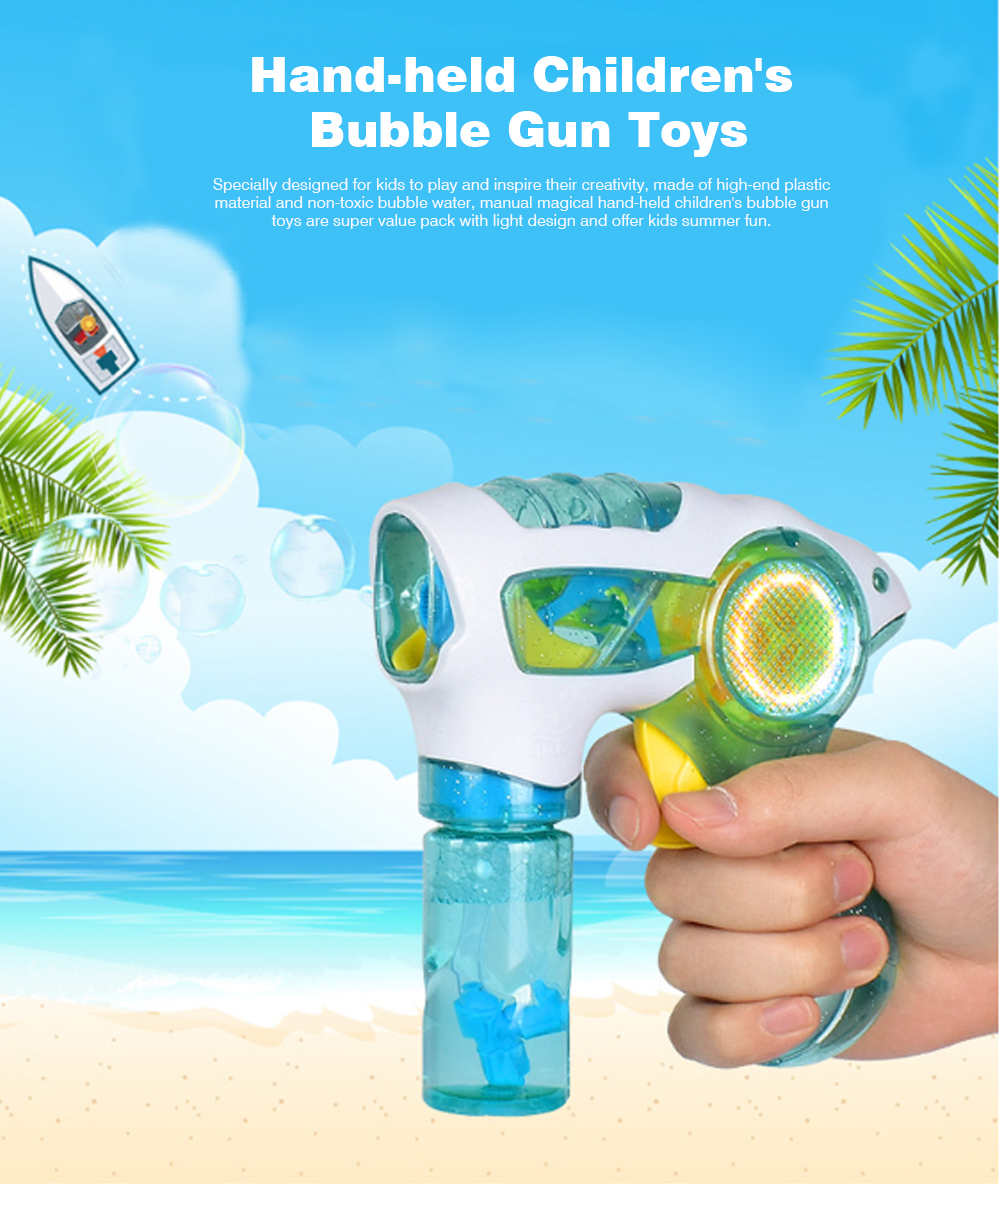 Manual Magical Children's Bubble Gun Toys with Colorful Light for Kids Enjoy Summer Fun 0